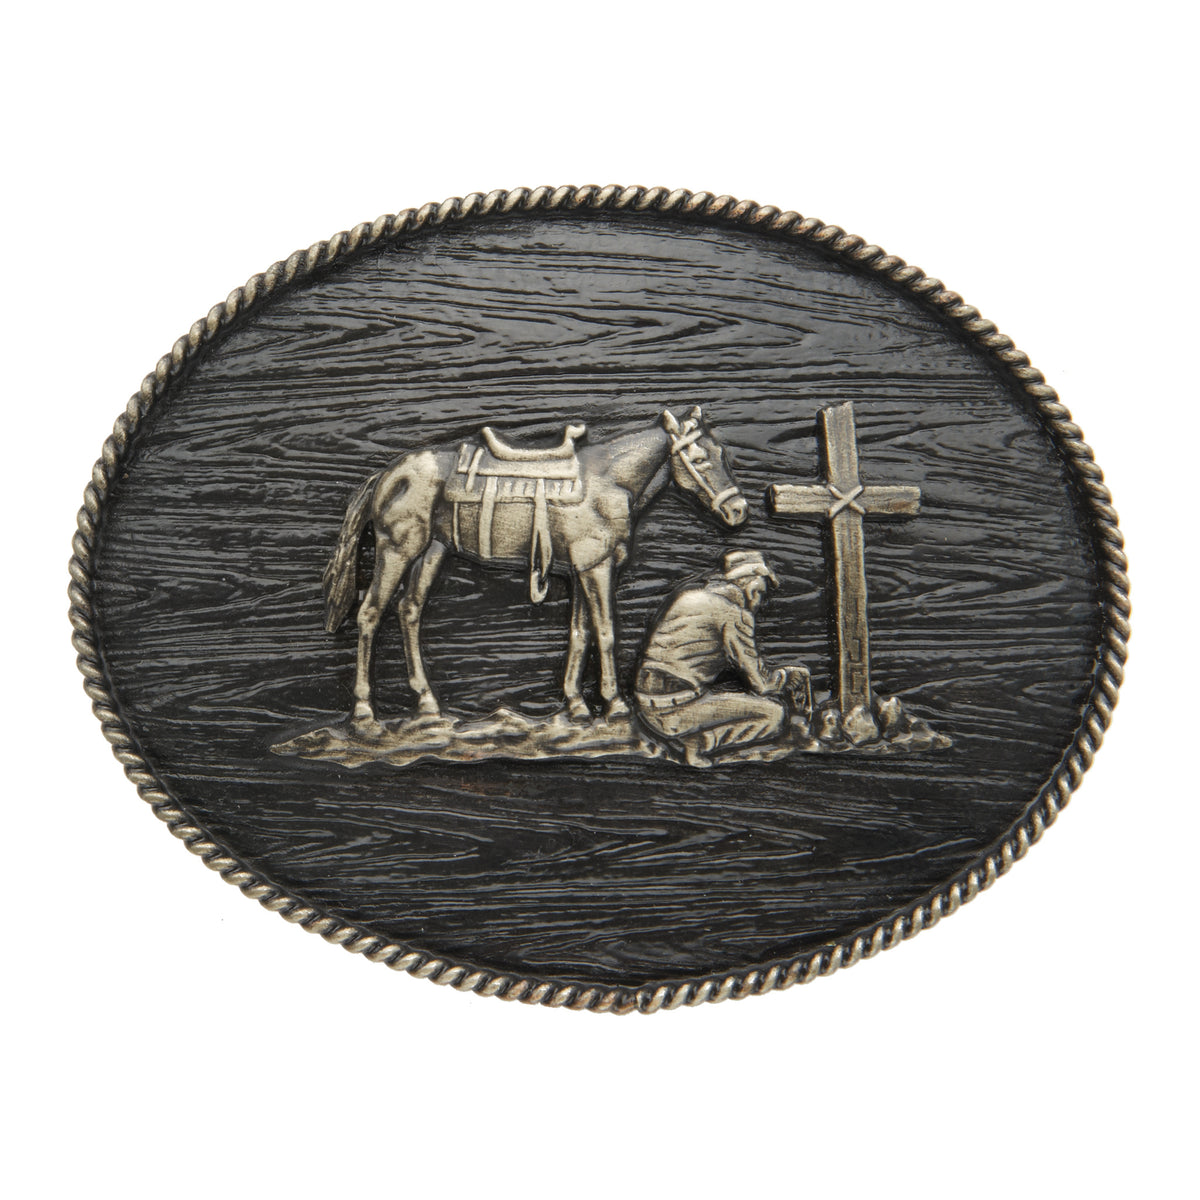 Praying Cowboy Iconic Classic Buckle